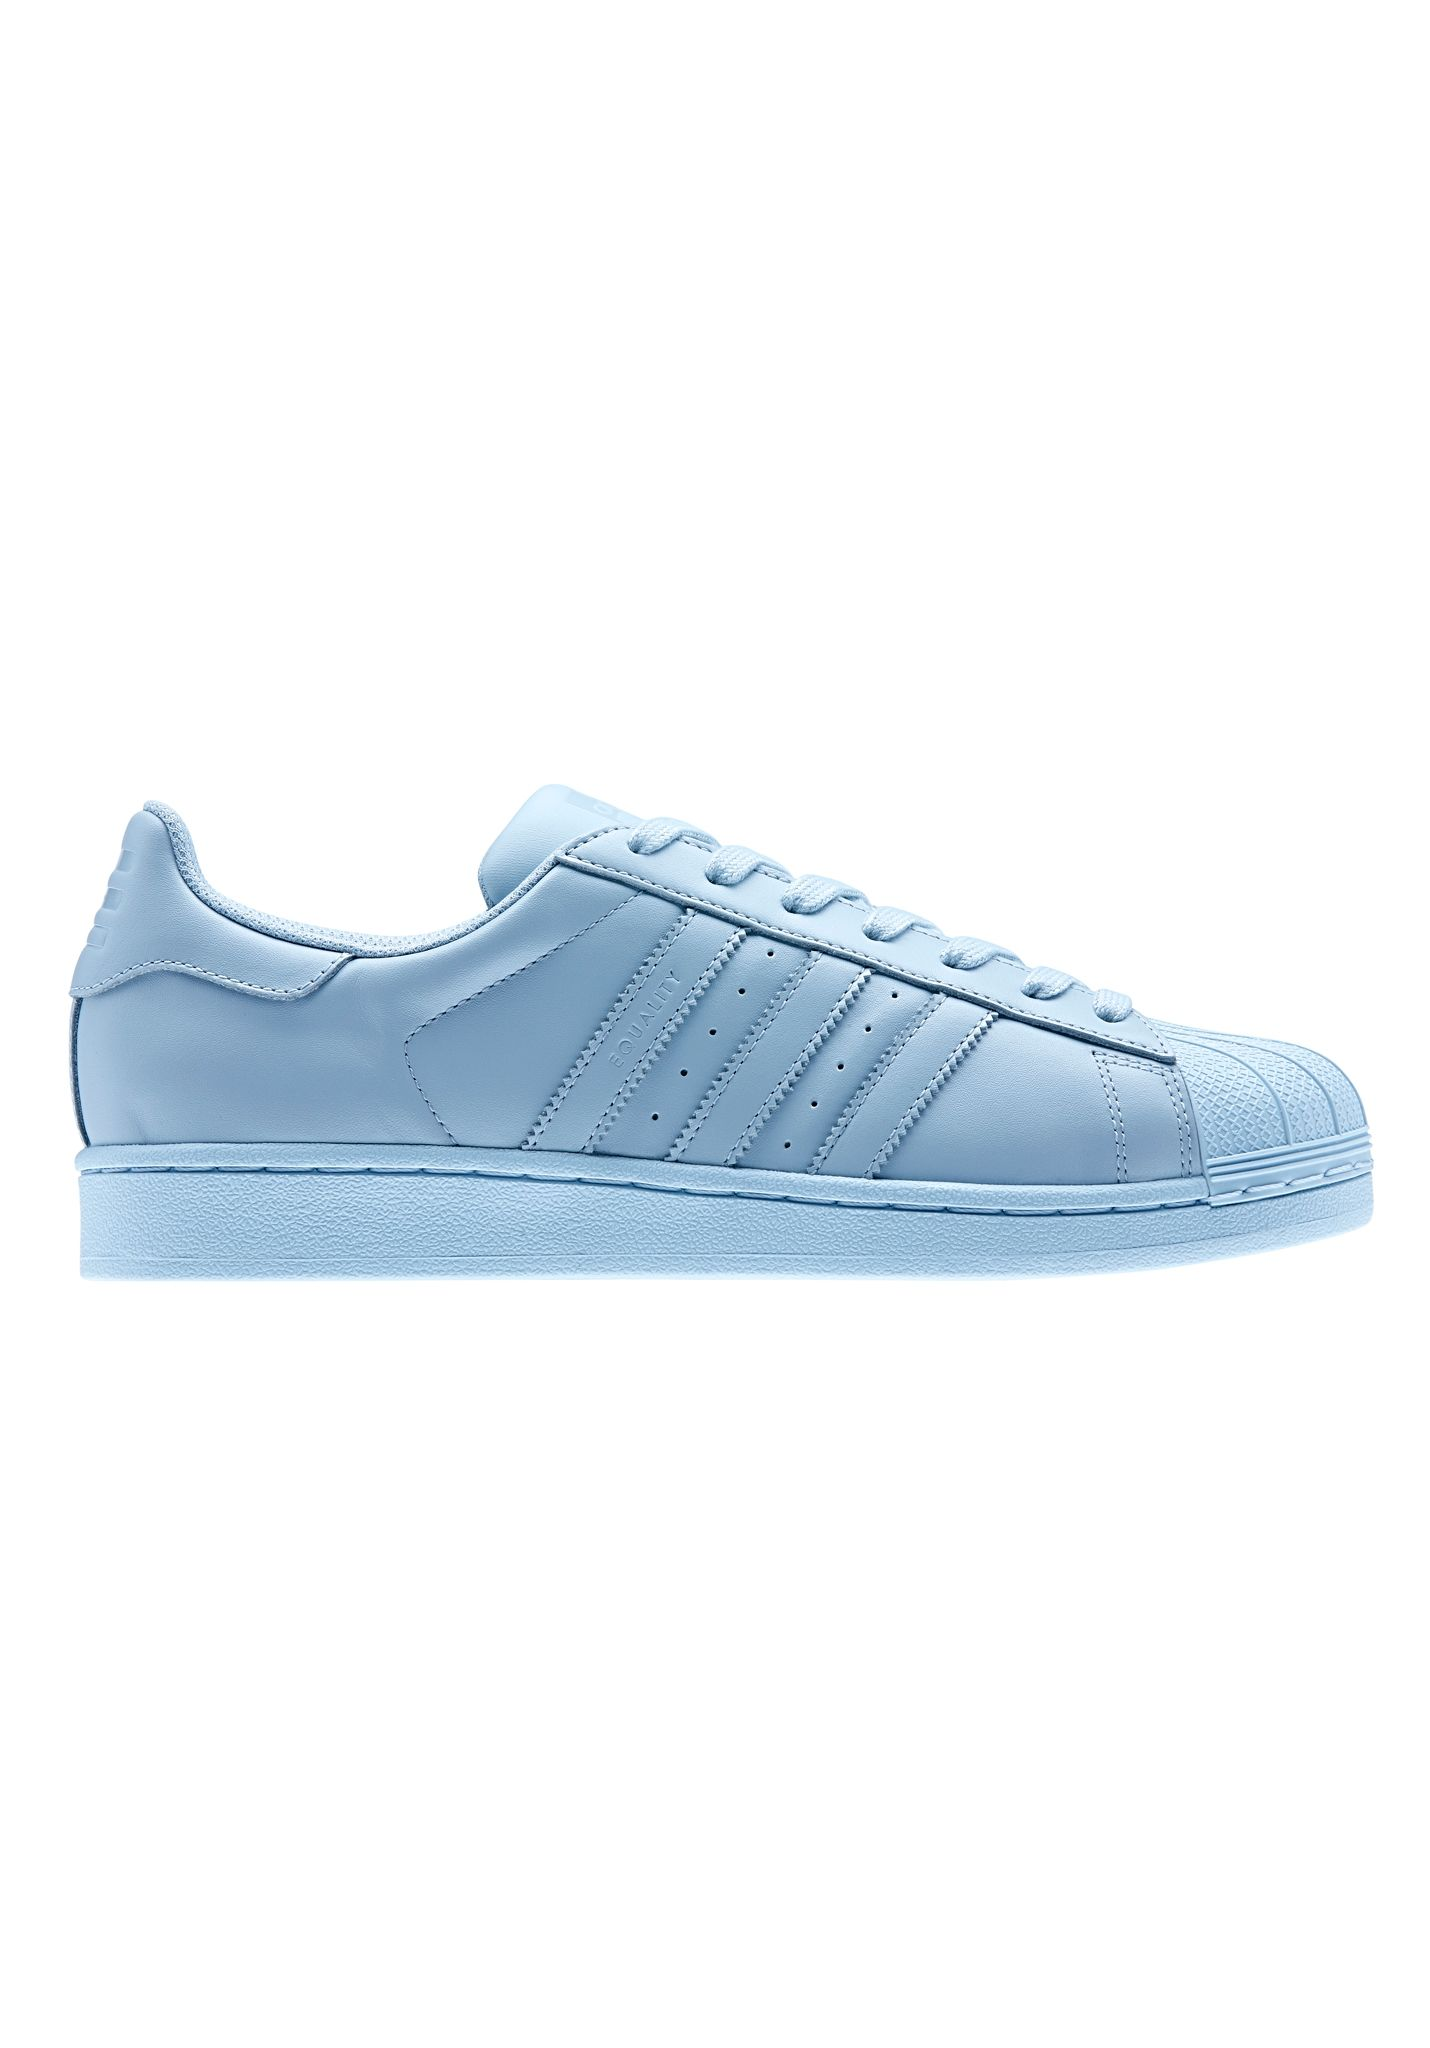 adidas superstar supercolor hellblau city star. Black Bedroom Furniture Sets. Home Design Ideas